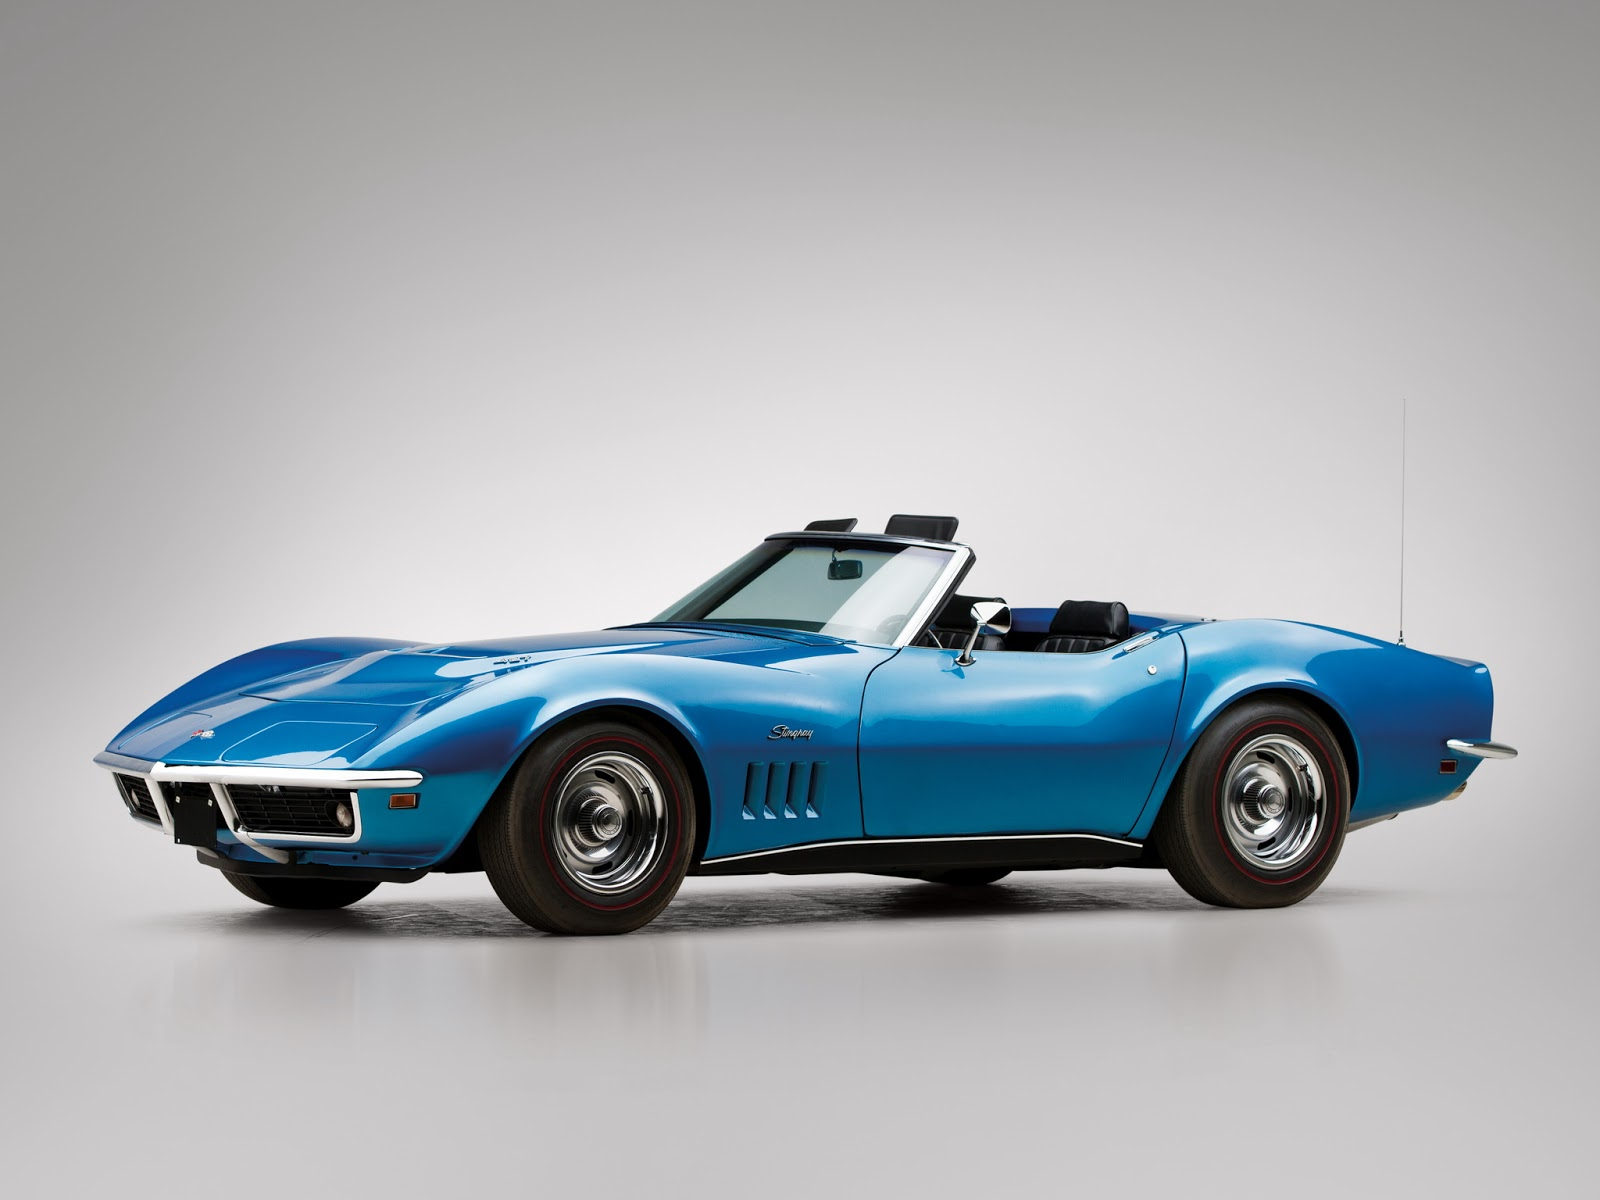 1969 chevrolet corvette stingray convertible whether you re interested in restoring an old classic car or you just need to get your family s reli